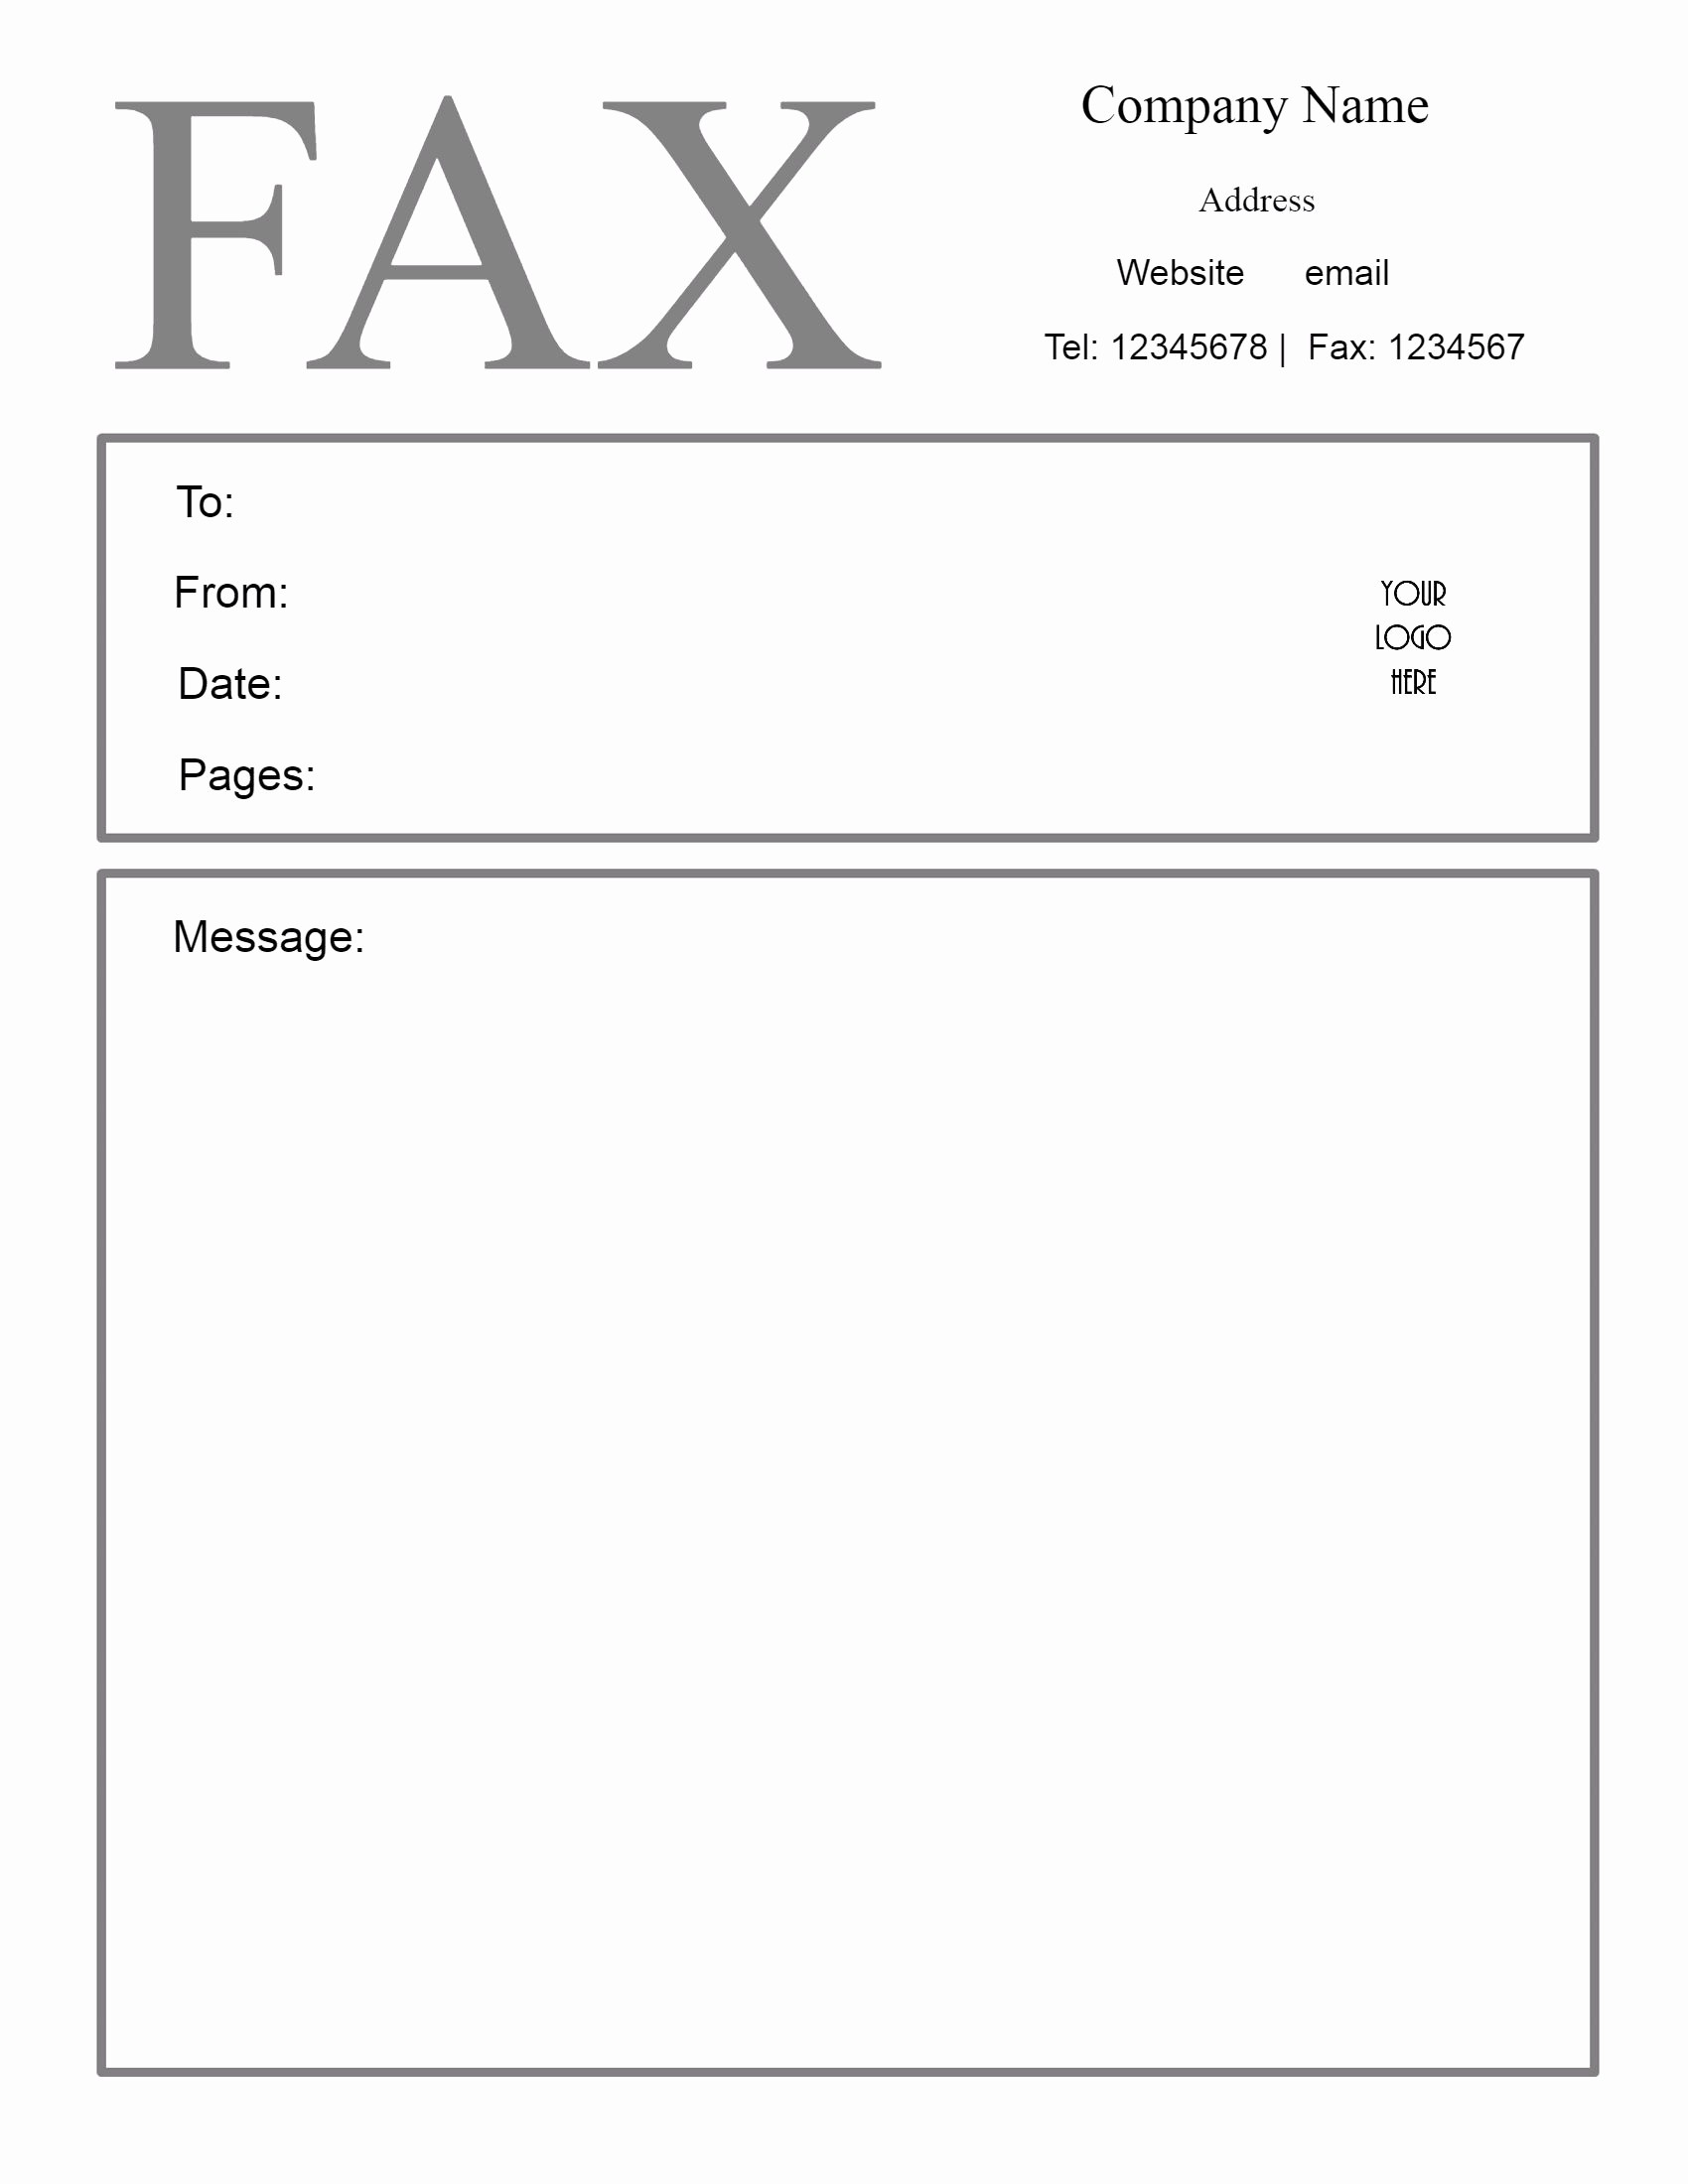 Fax Cover Sheet Pdf format Lovely Free Fax Cover Sheet Template